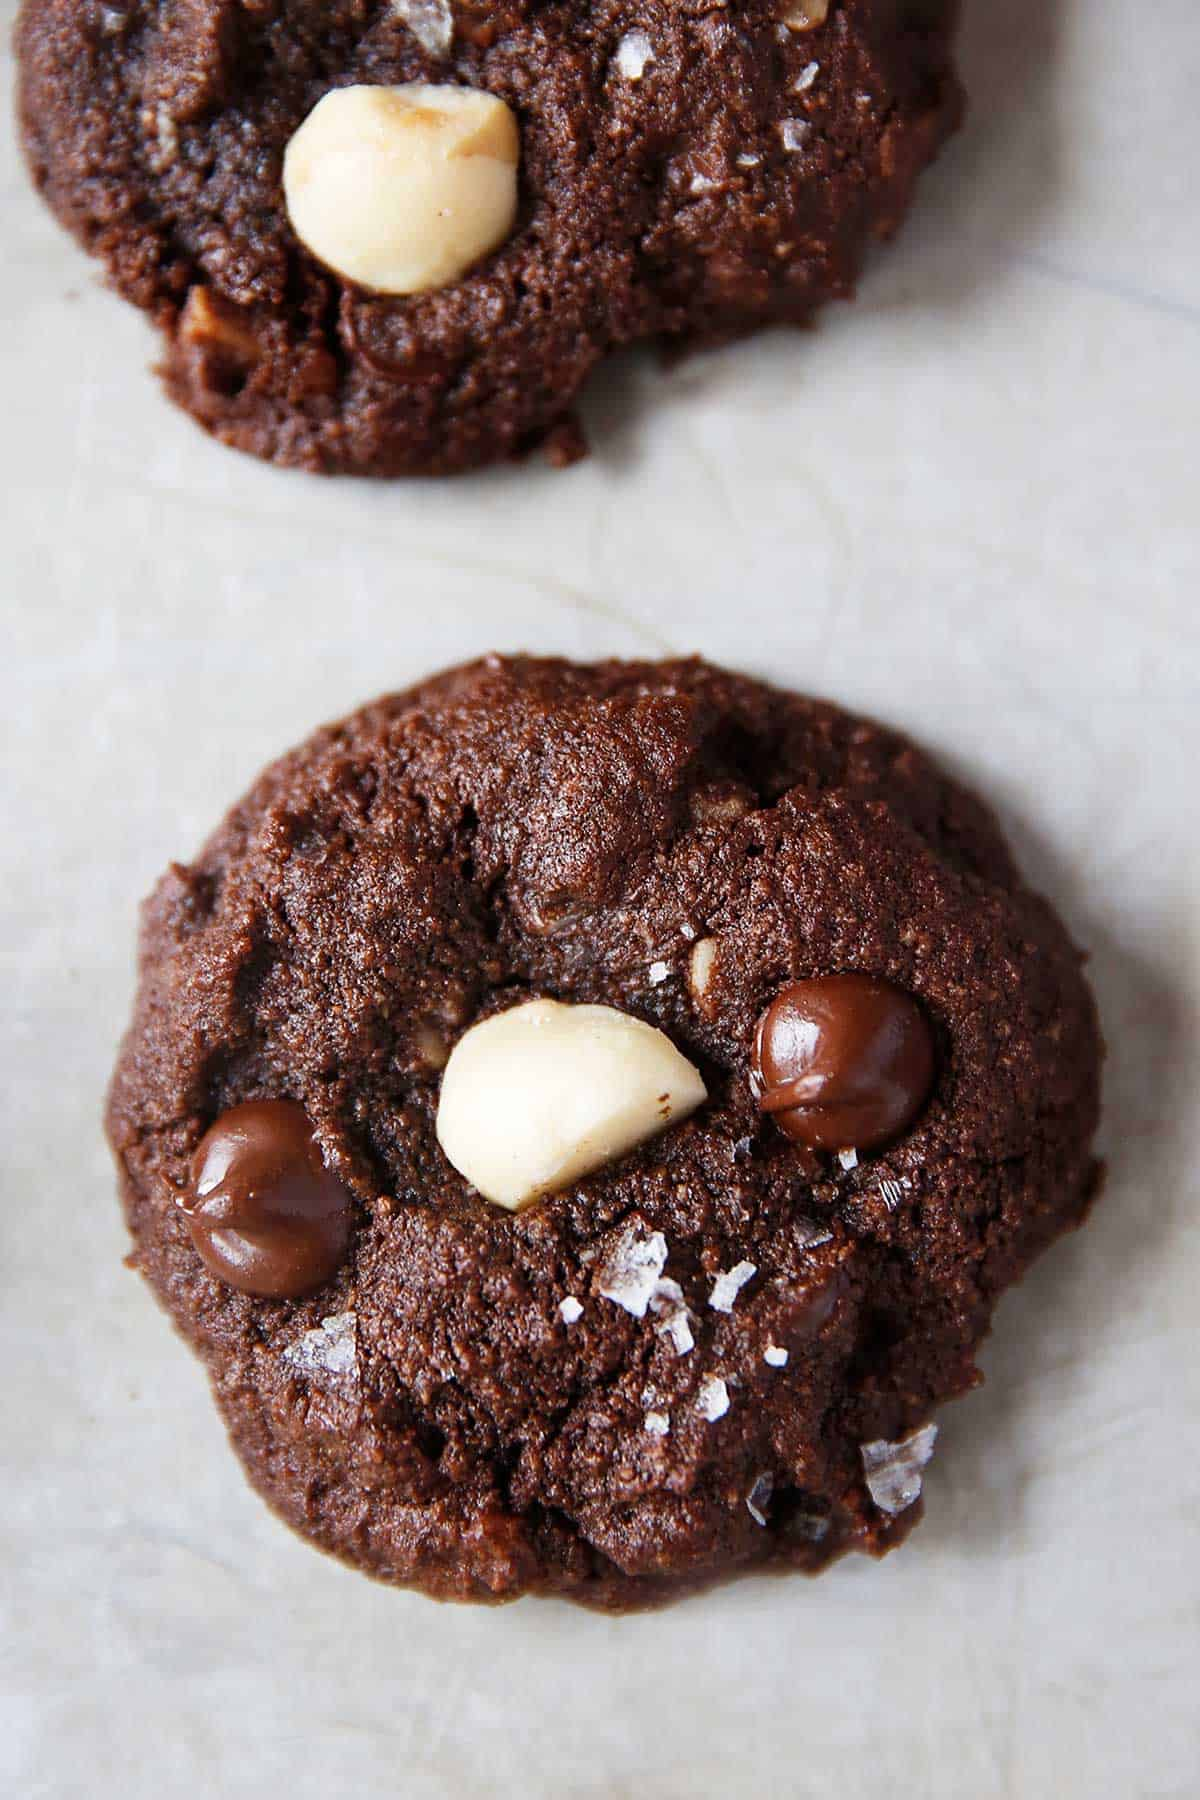 A double chocolate macadamia nut cookie with sea salt on top on a baking sheet.